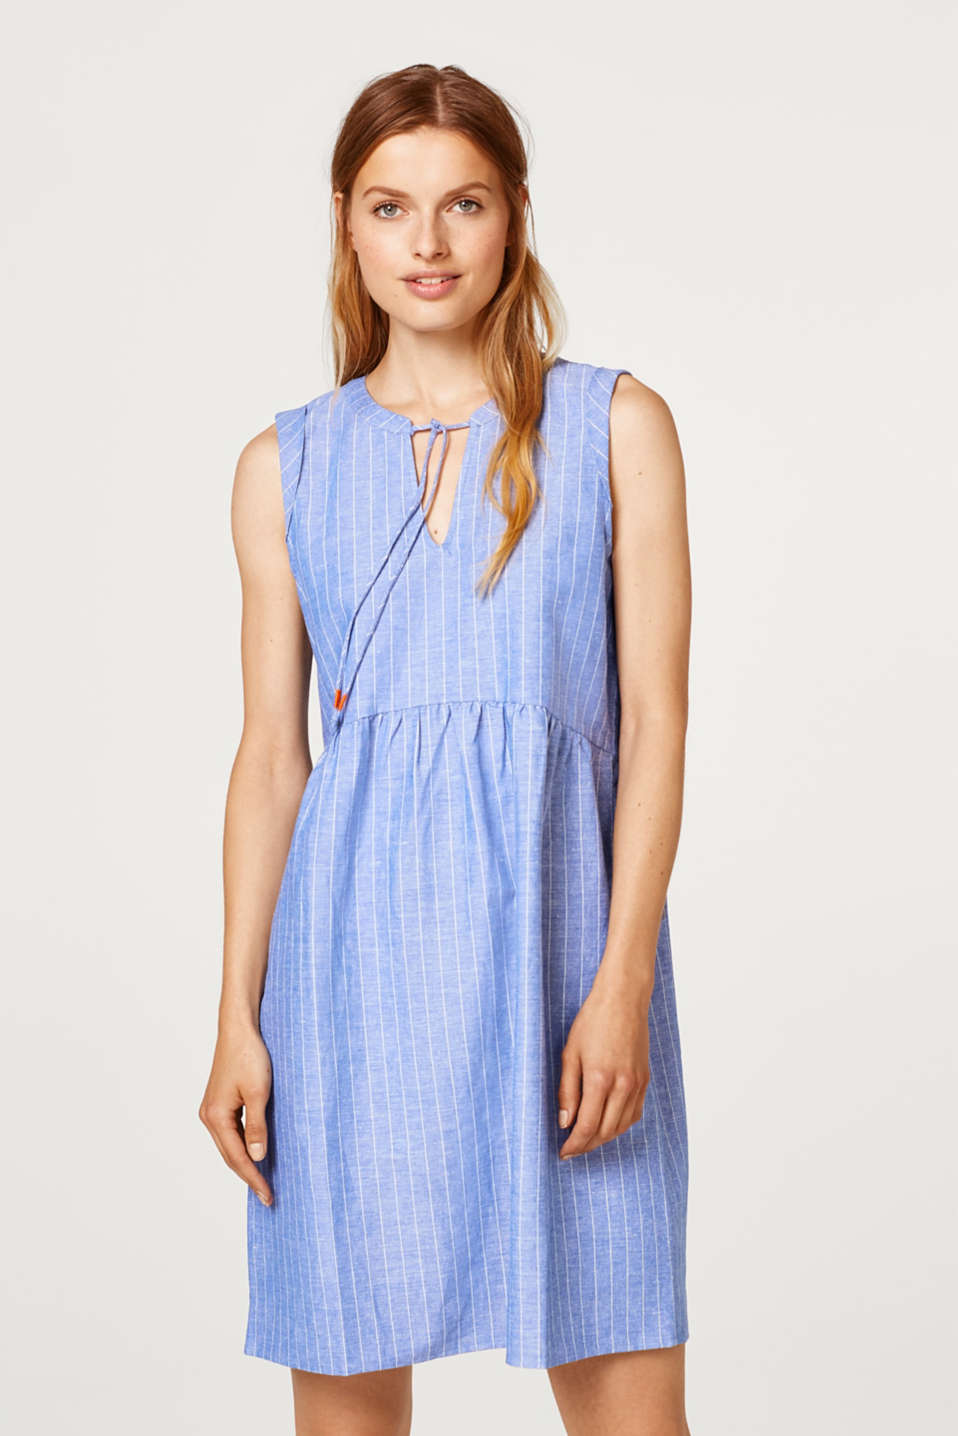 edc - Made of blended linen: Dress with fine stripes